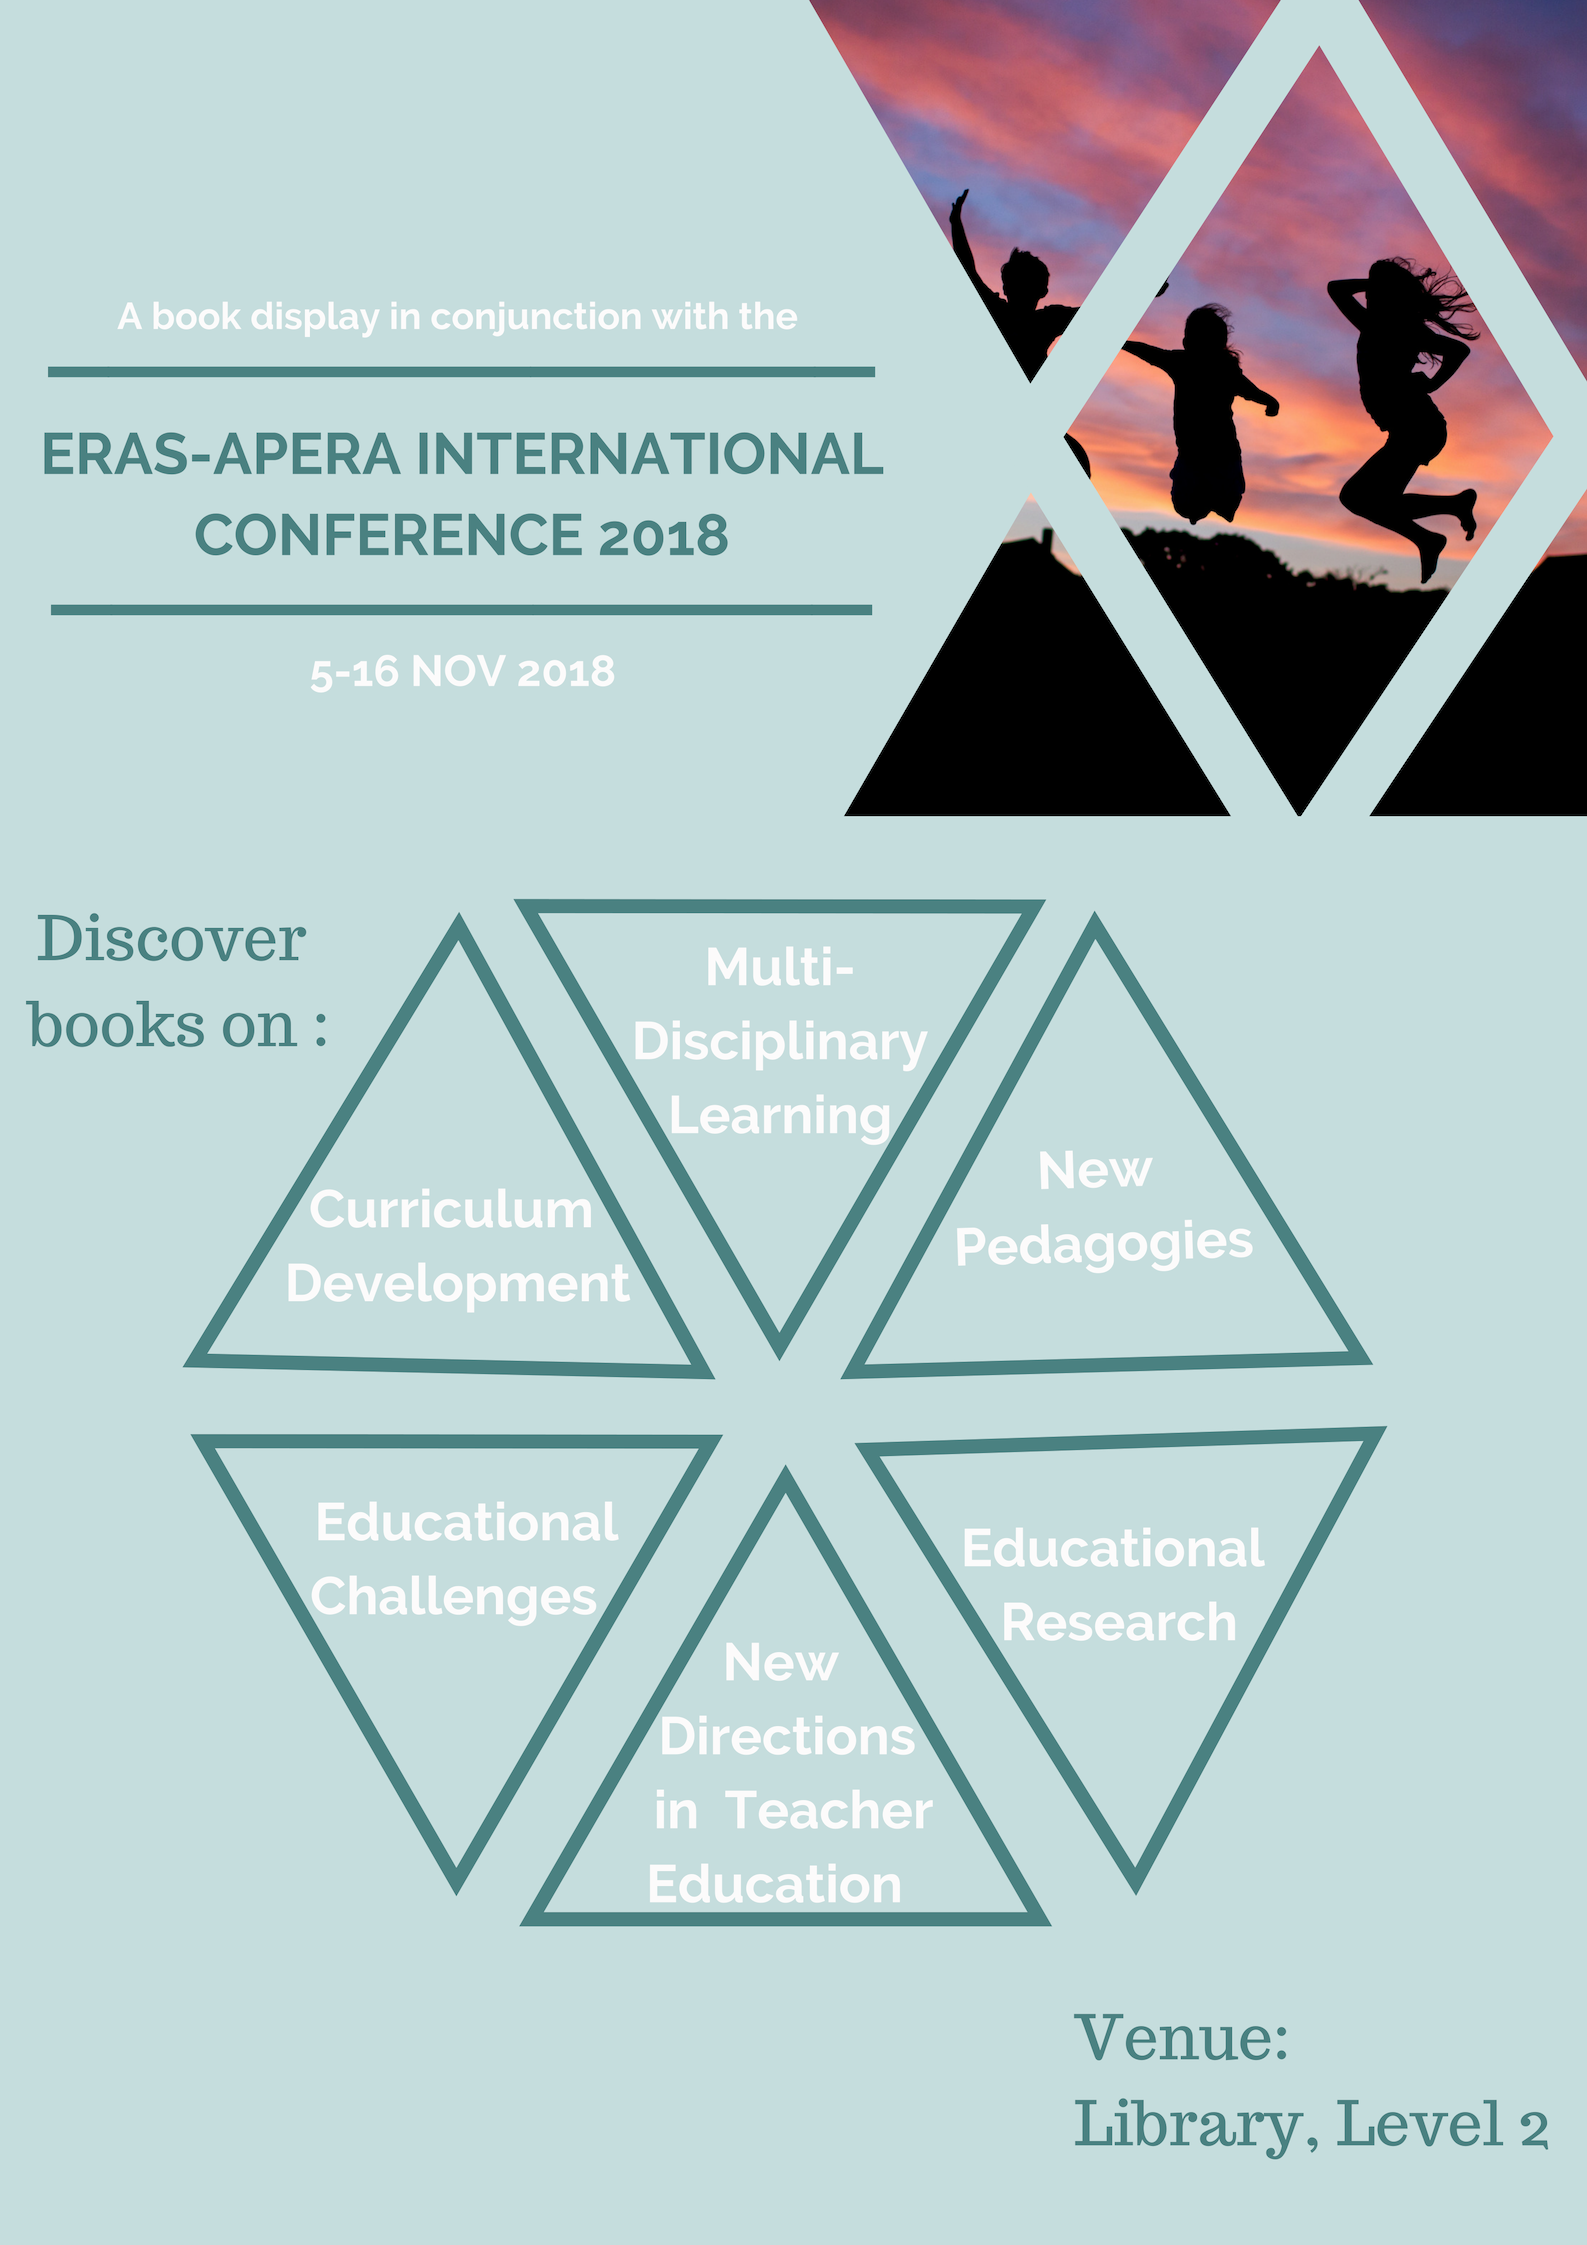 Book display for ERAS-APERA International Conference 2018